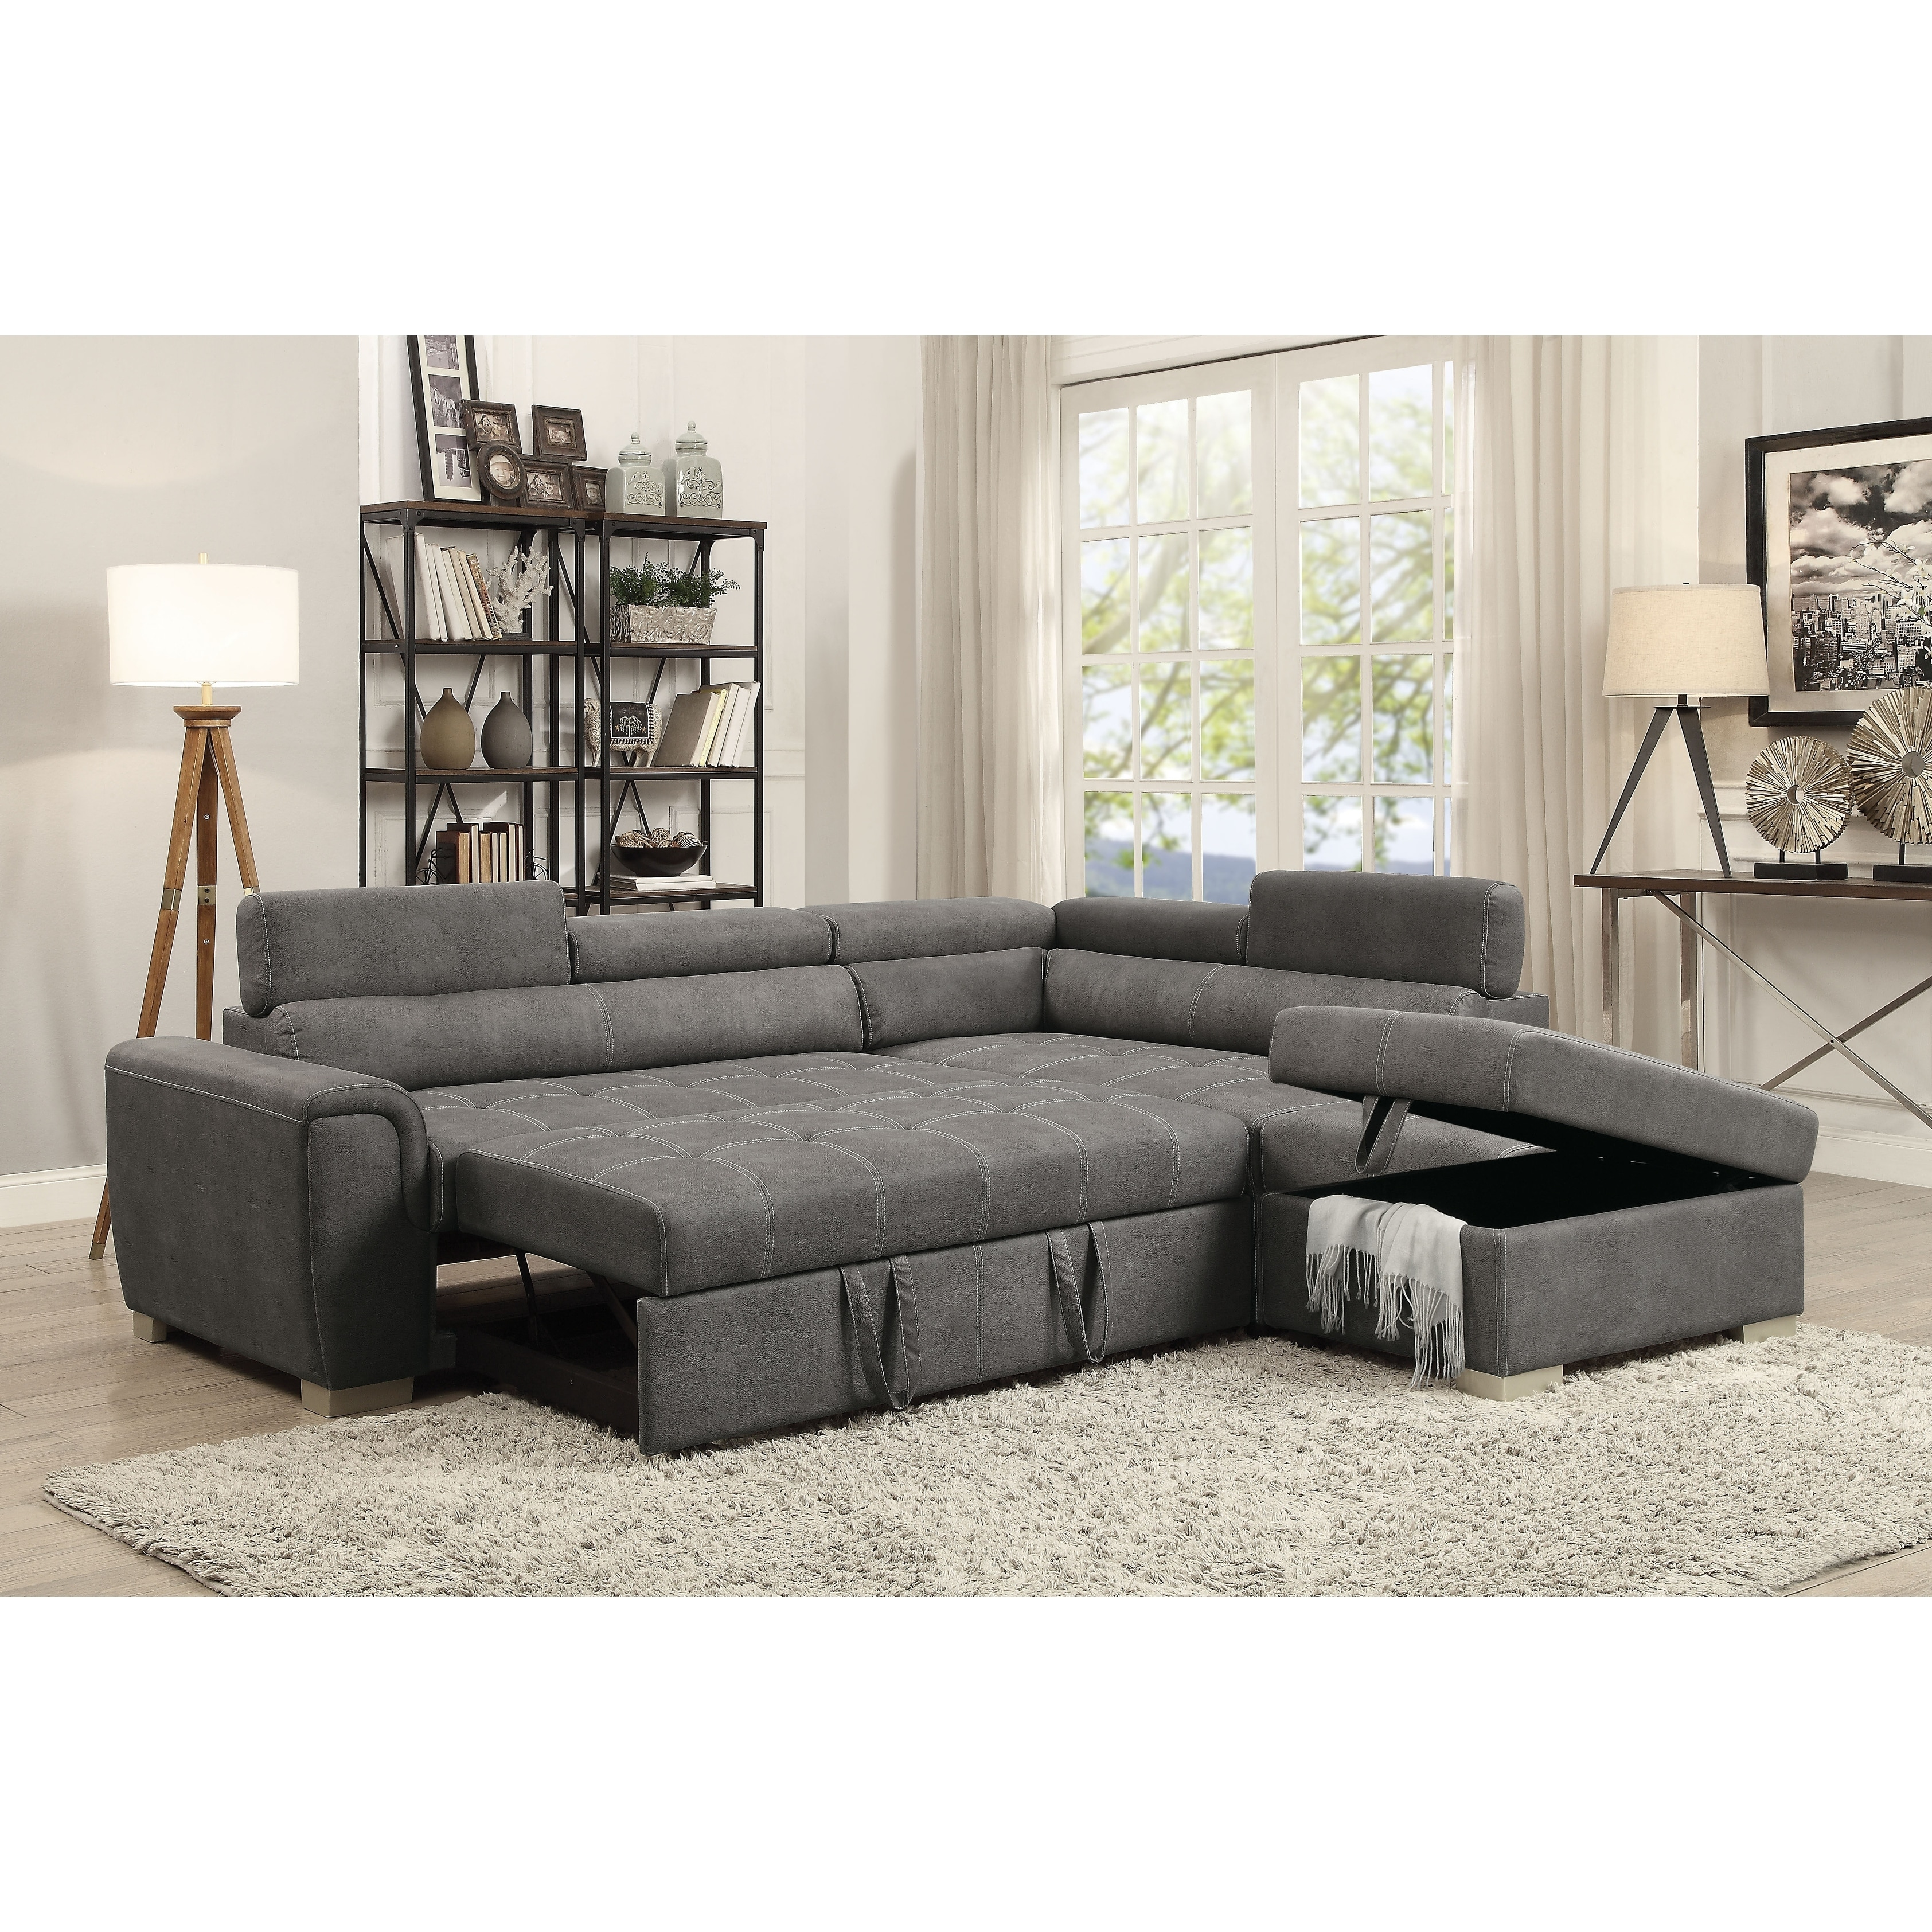 Superieur Shop ACME Thelma Sectional Sofa With Sleeper And Ottoman In Gray Polished  Microfiber   Free Shipping Today   Overstock.com   18517836